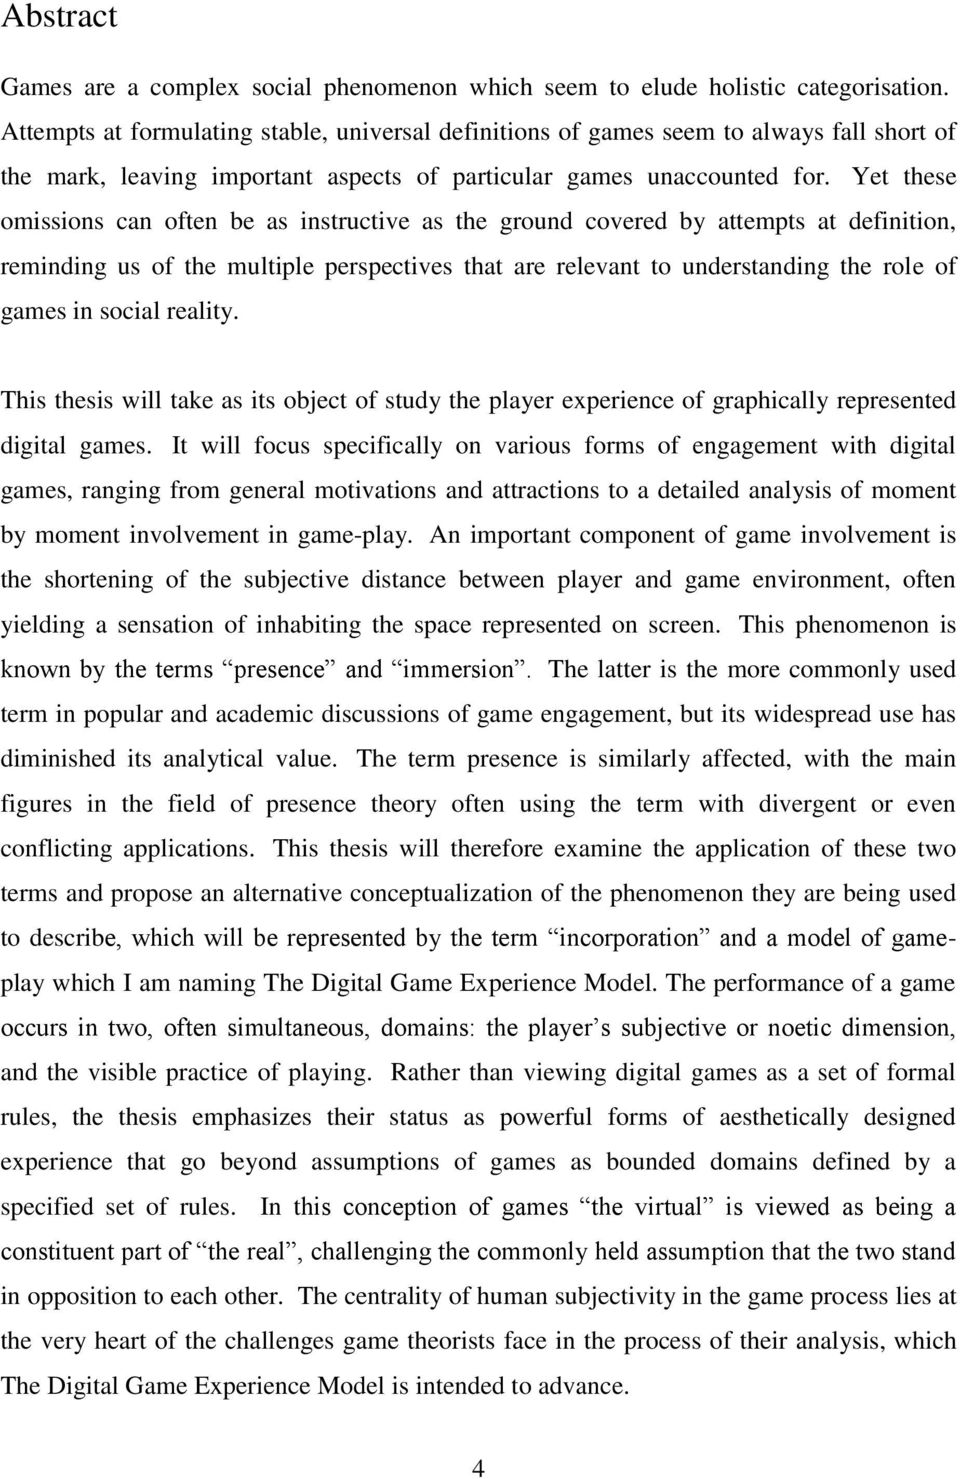 Yet these omissions can often be as instructive as the ground covered by attempts at definition, reminding us of the multiple perspectives that are relevant to understanding the role of games in